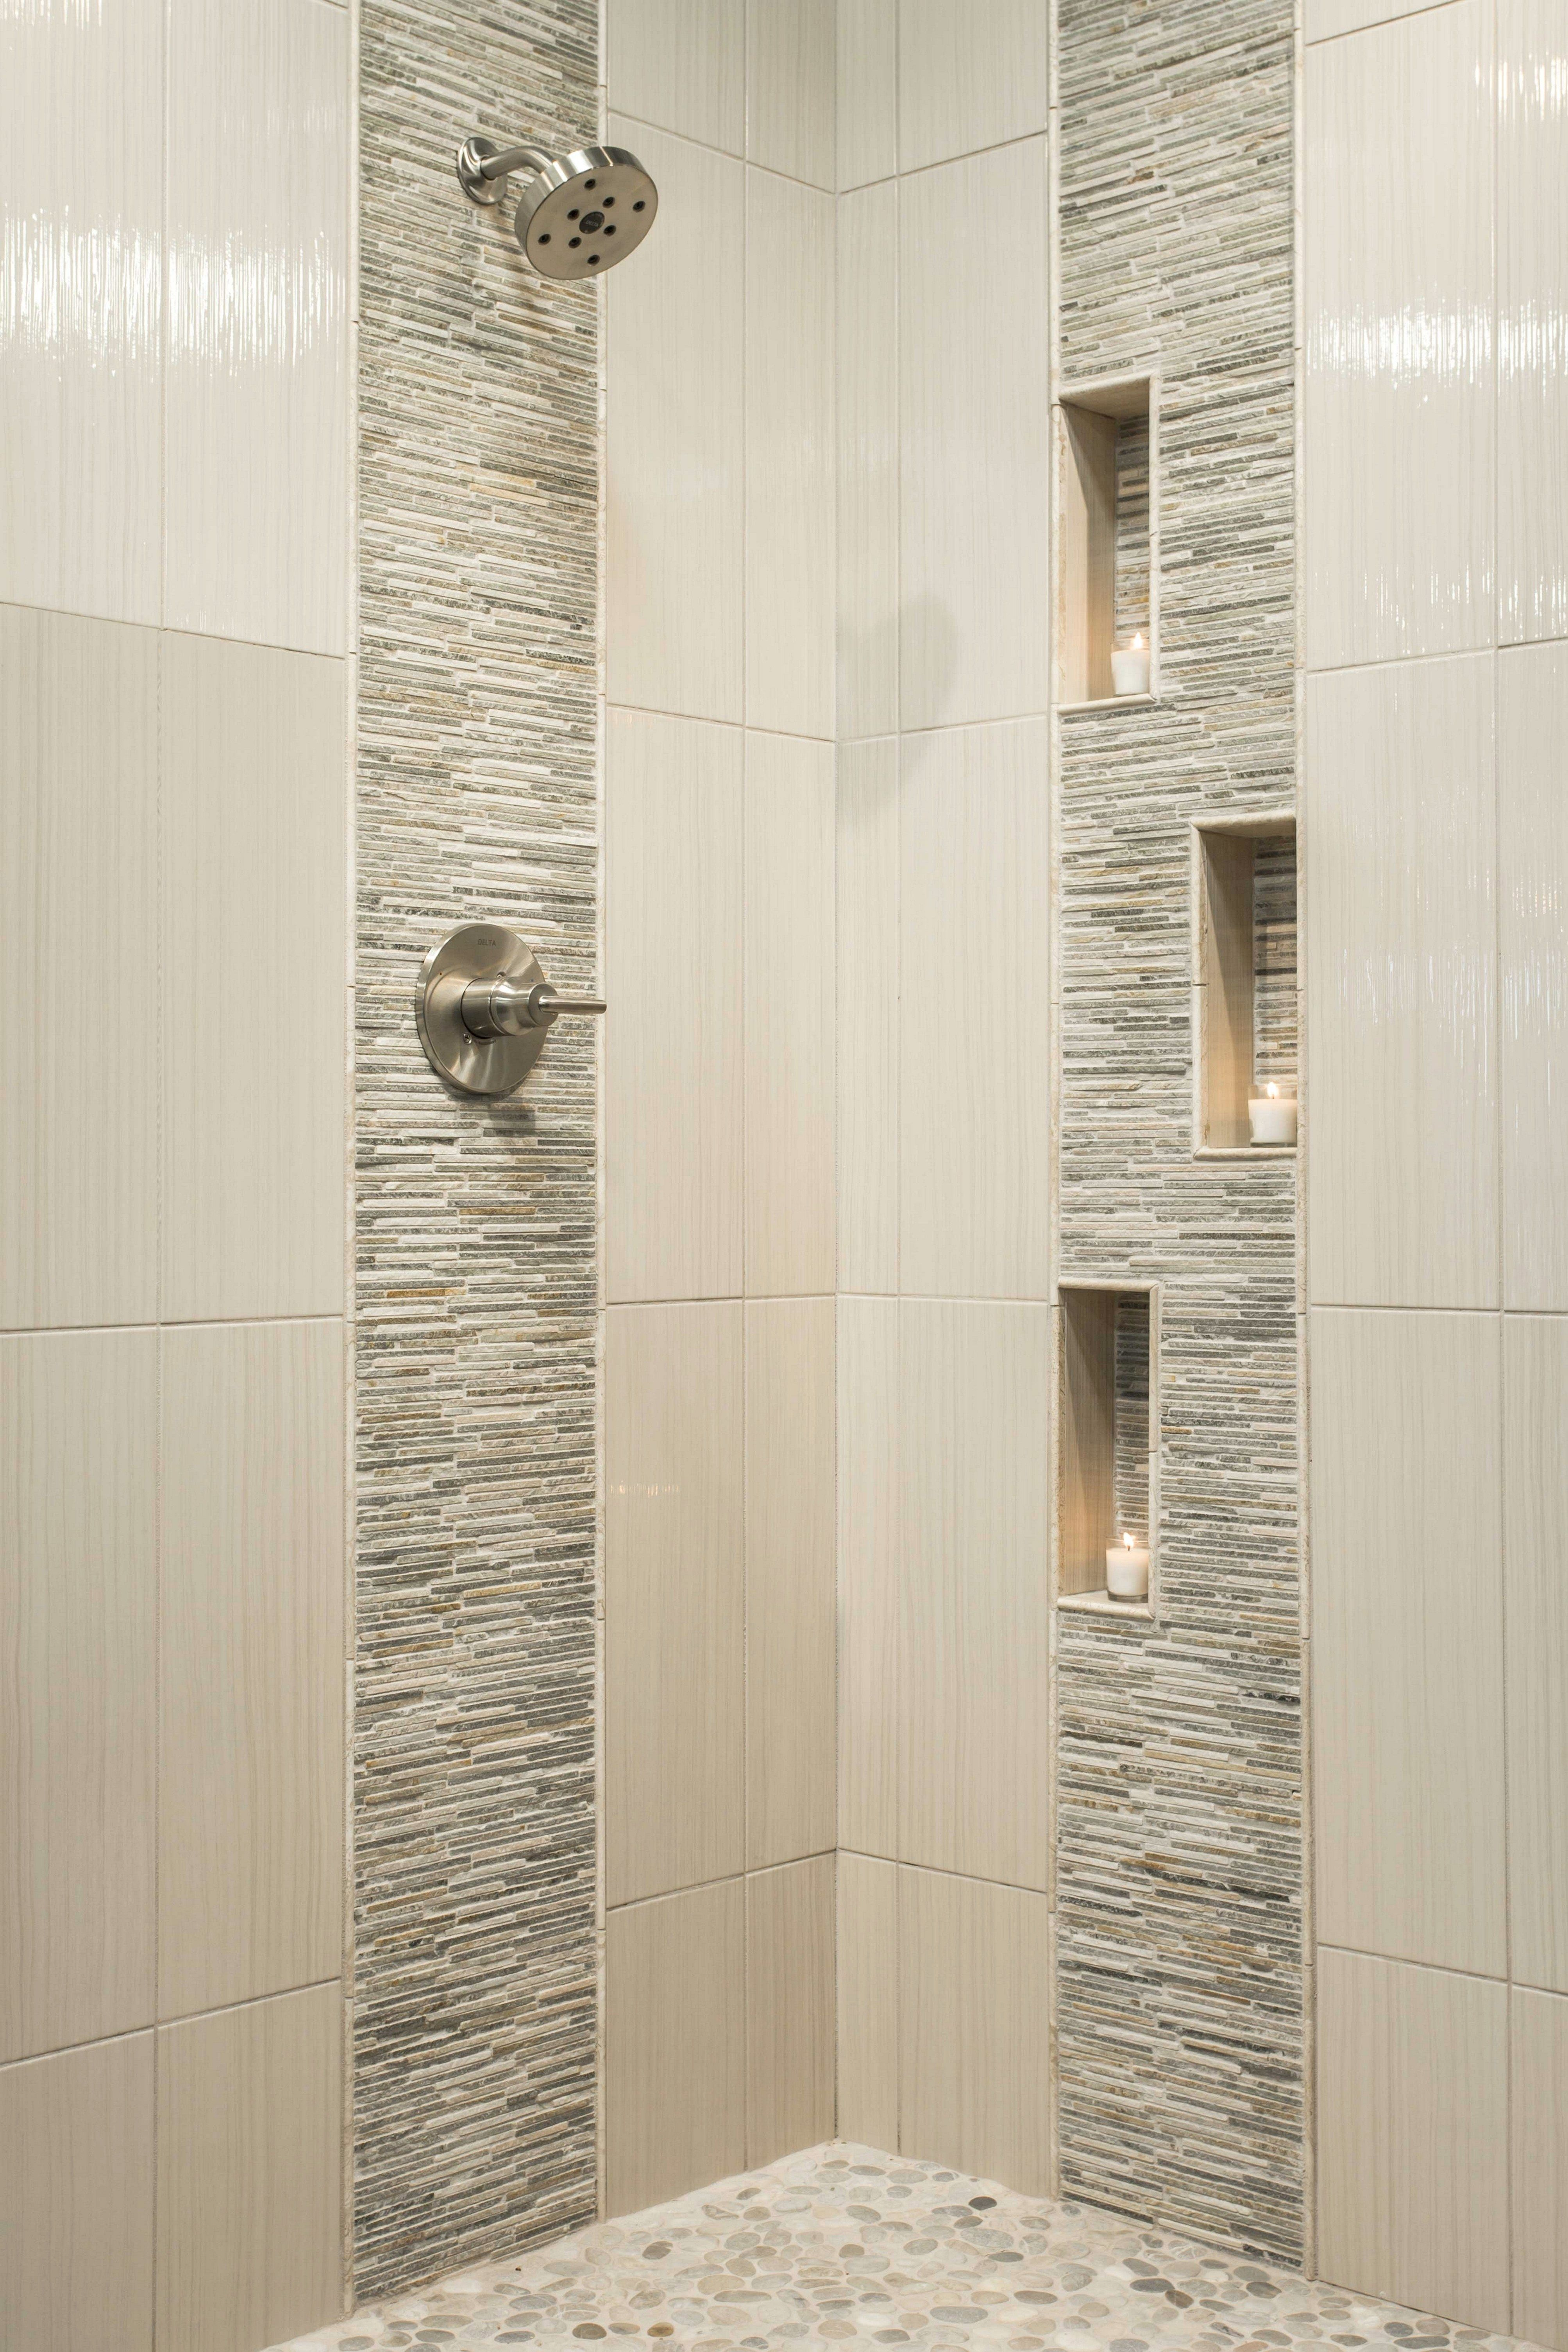 75 Bathroom Tiles Ideas For Small Bathrooms 7 With Images